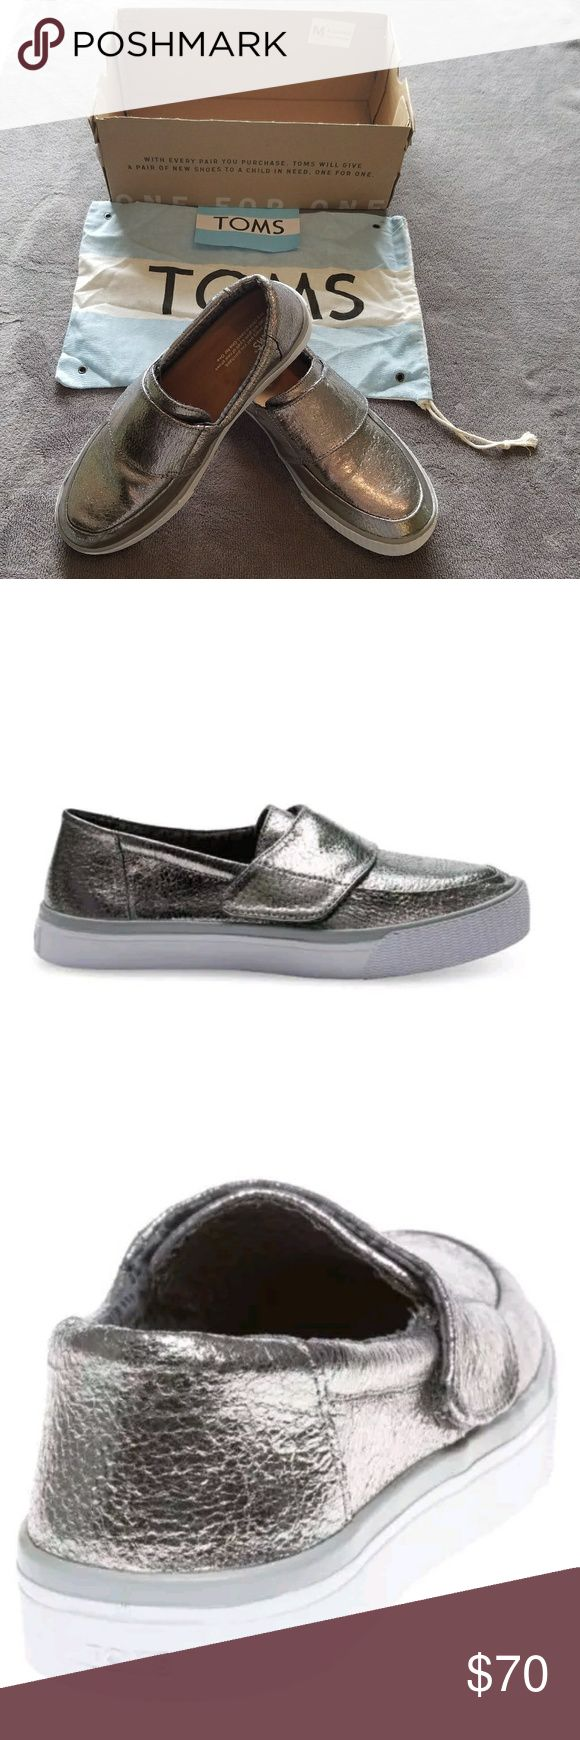 TOMS Altair Gunmetal Leather Slip On Shoes Sz 8 NEW Women's Toms Metallic Grey Altair Slip On Leather Shoes Flats Sz 8  Comes with sticker, Dust Bag and Bottom part of the shoe box.  The TOMS Altair plimsolls are the perfect slip on shoe, appearing in cracked metallic uppers and featuring a velcro top strap, the aztec lining and thick white rubber outsole completes this design.  Color - Gunmetal Leather Main Upper Material - Leather Slip On, Hook and Loop Fastener  Comfort Insole TOMS tonal…